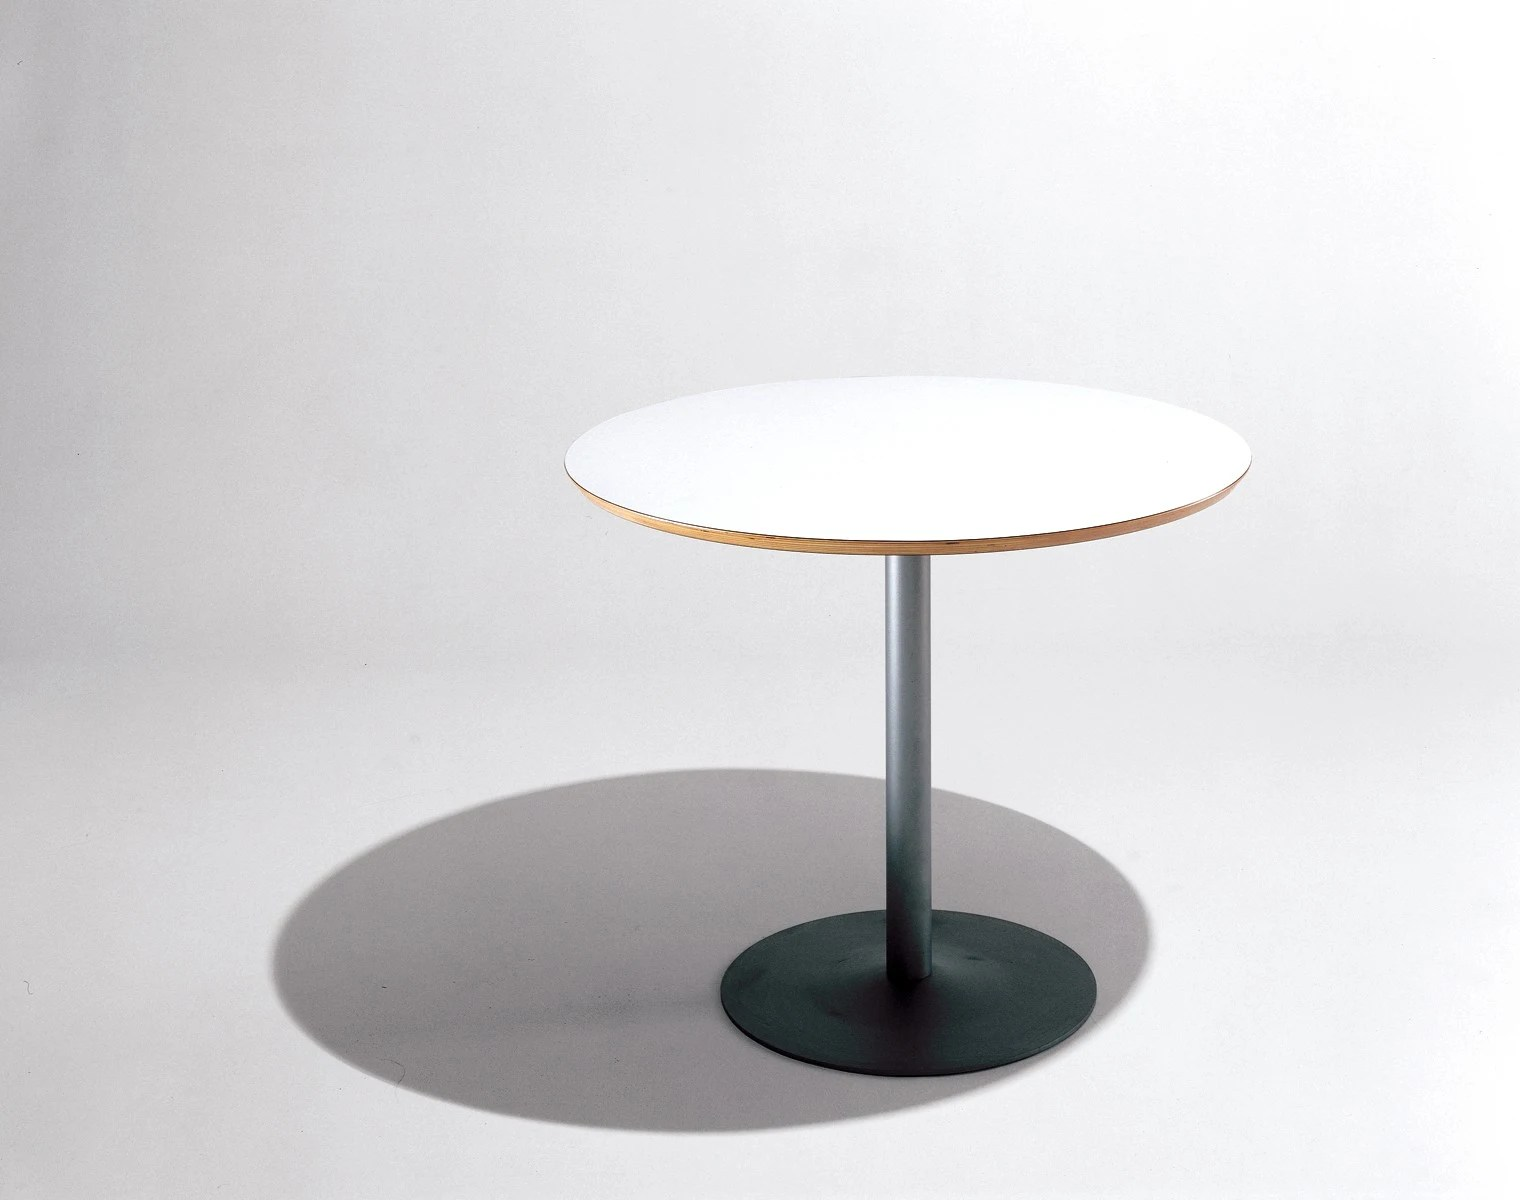 Knoll Table Knoll Piiroinen Arena Bar Height Round Cafe Table